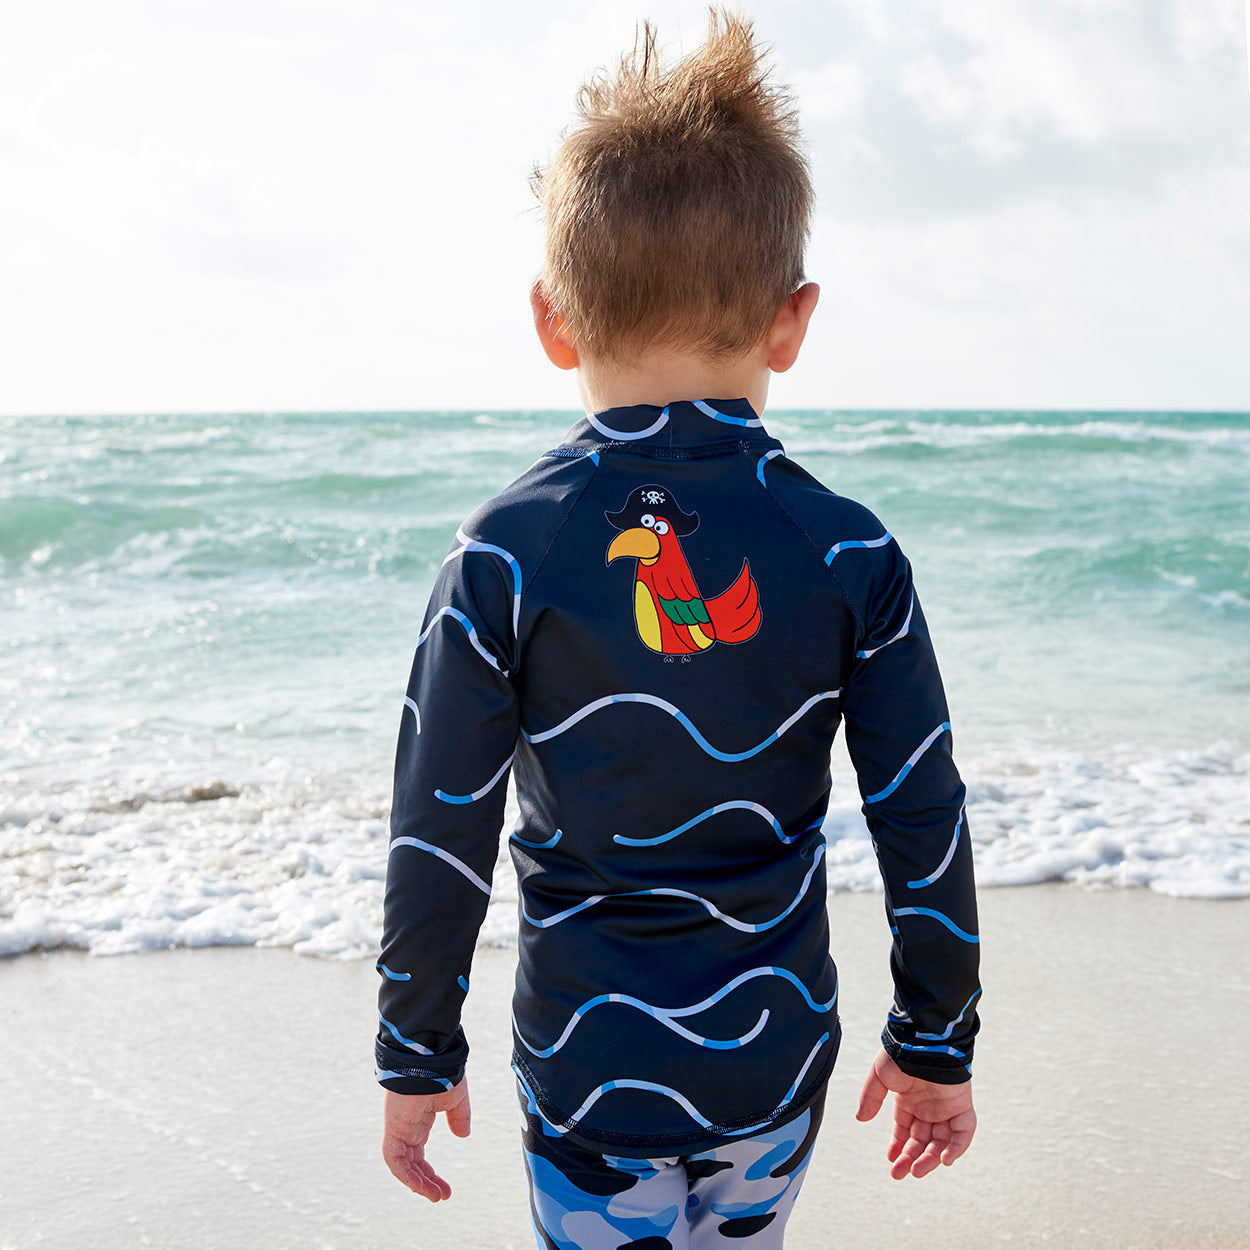 Fun Pirate Top Back Rash Guard Set Boy Walking On The Sand Beach Sunpoplife